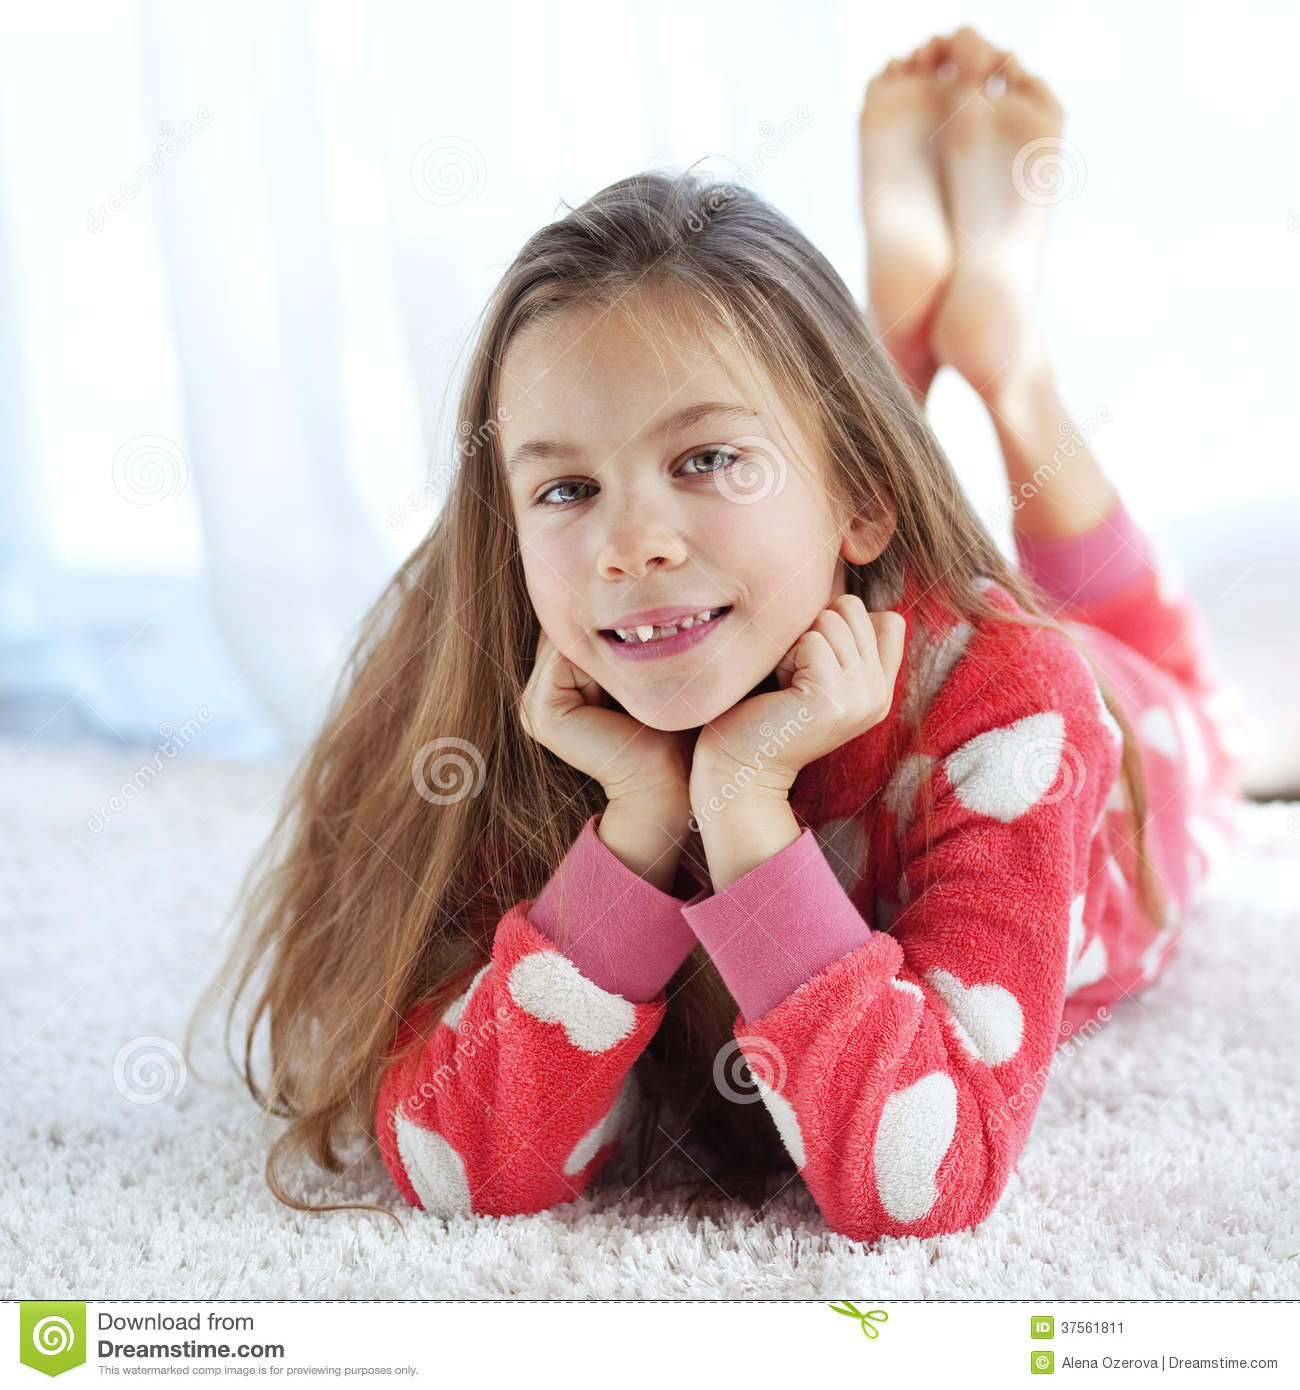 Child In Pajamas Stock Image. Image Of Cozy, Fleece, Child